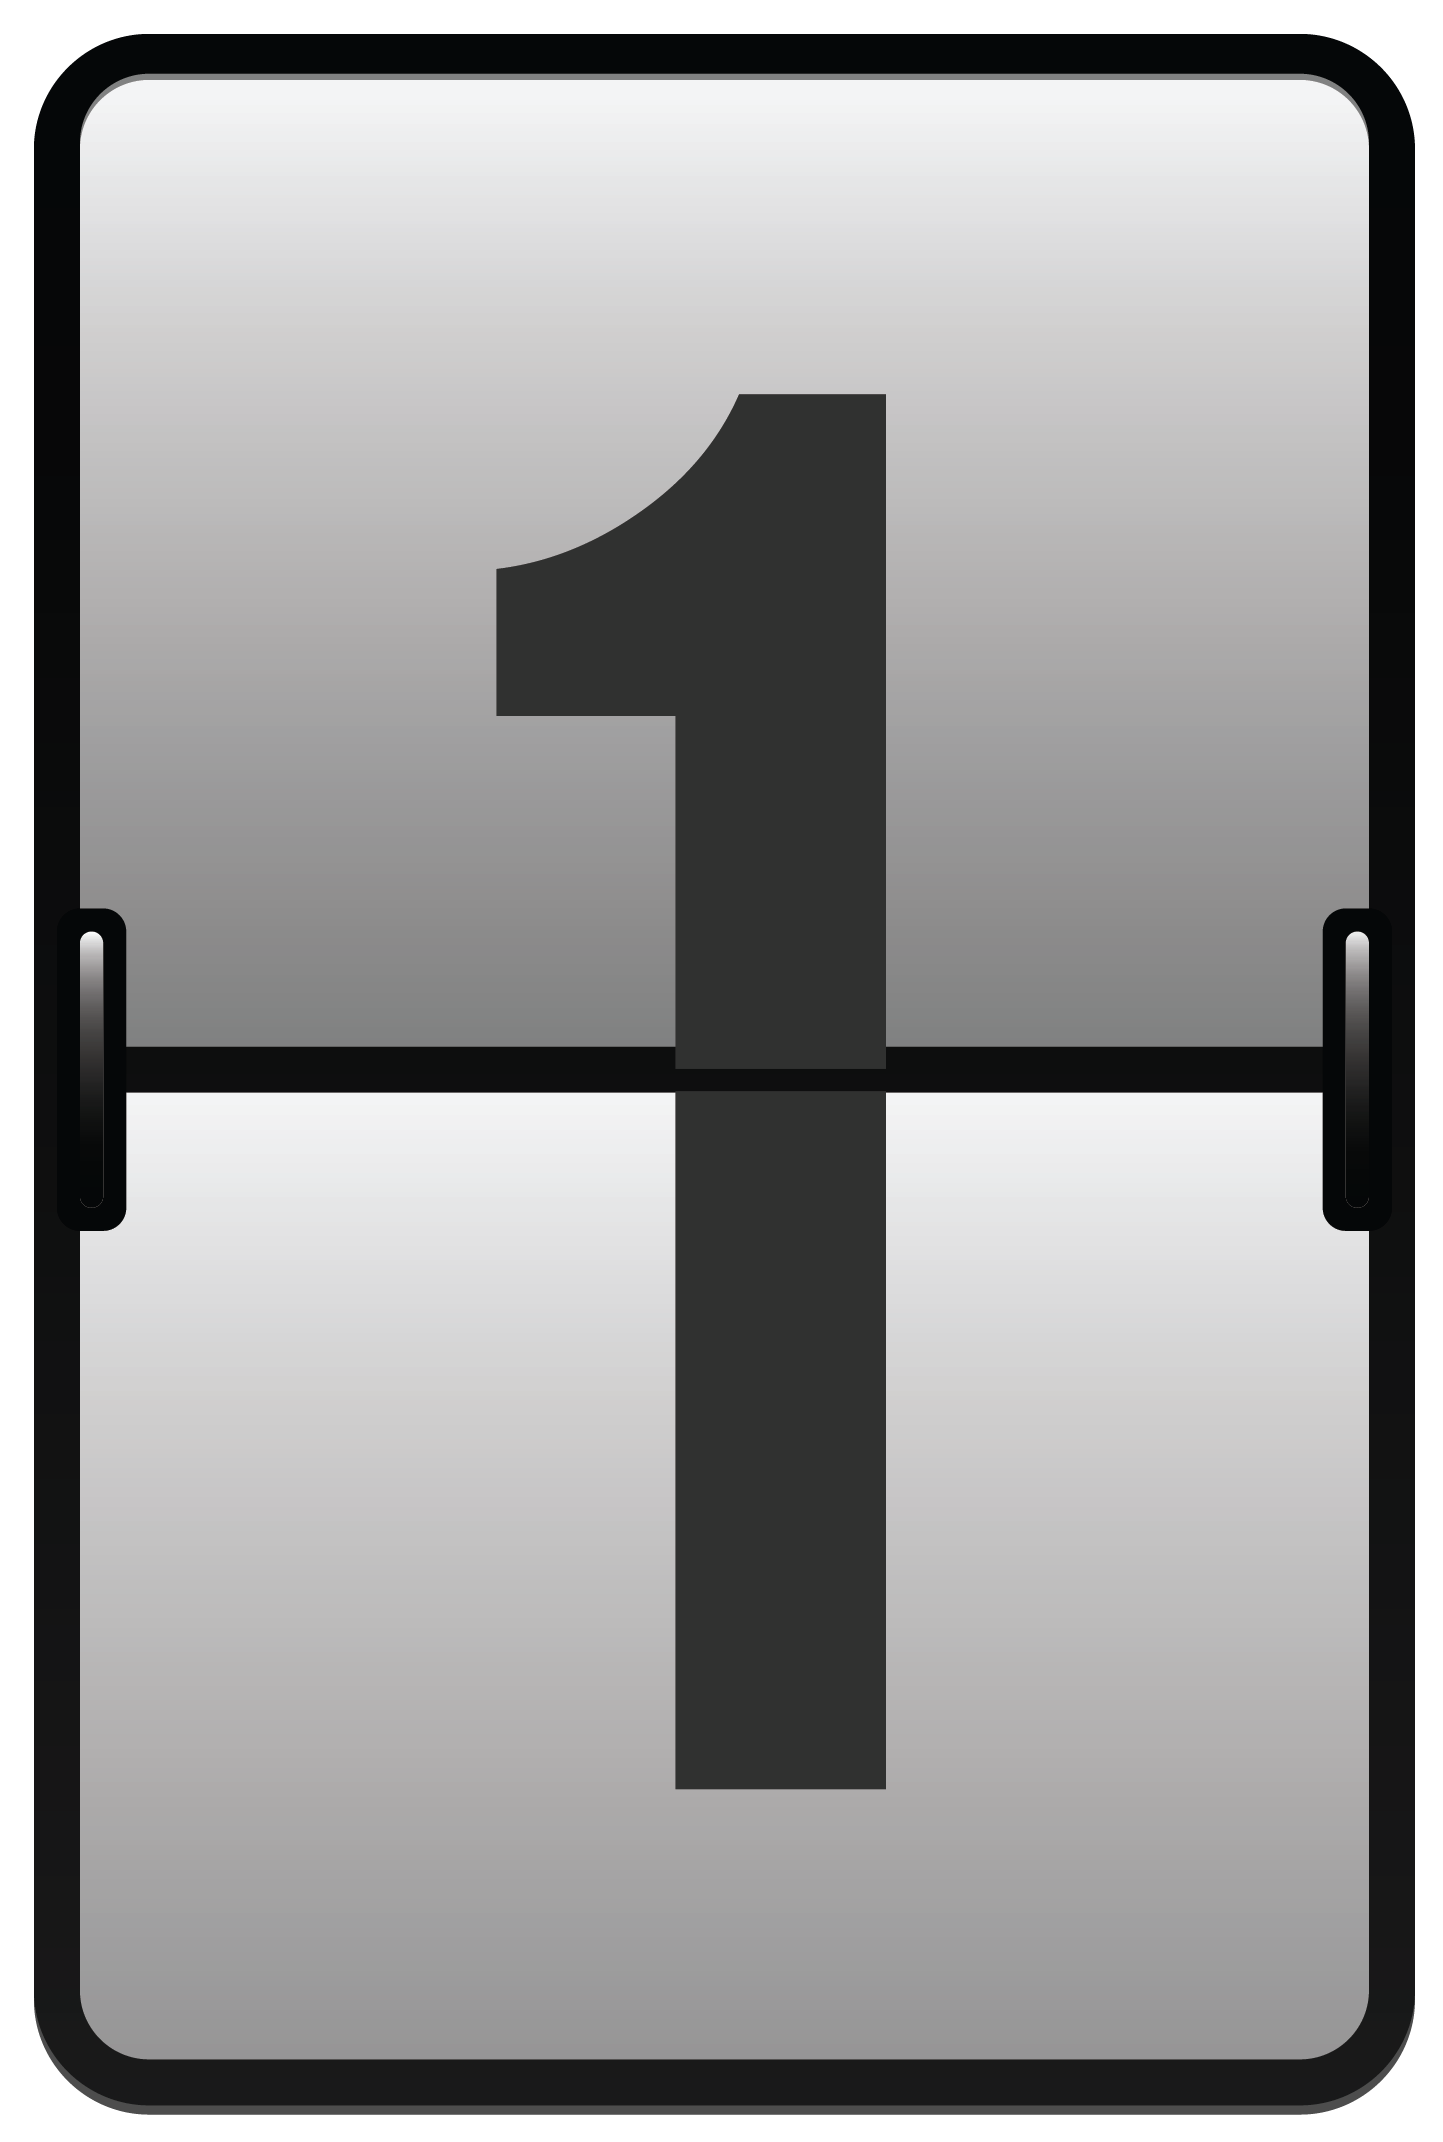 Counter Number One PNG Clipart Image.